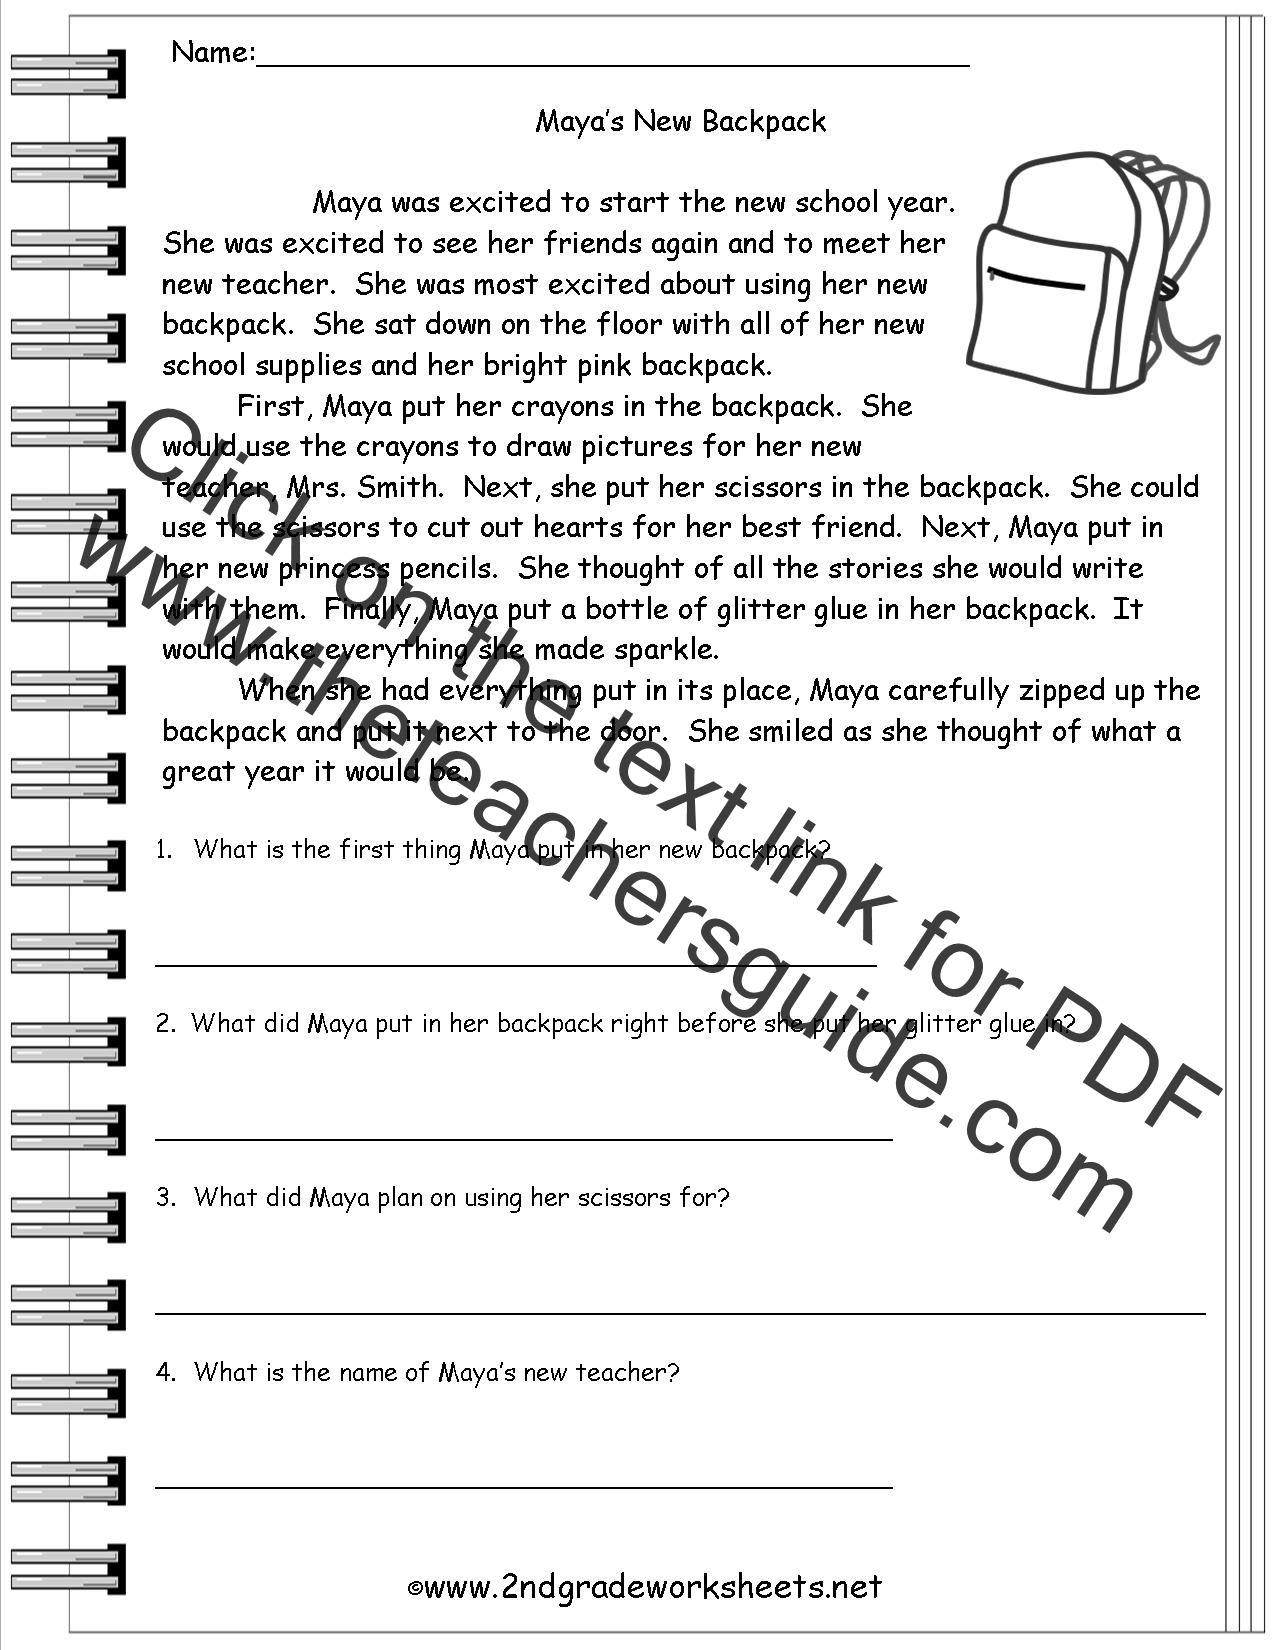 Reading Worksheeets – Free Reading Comprehension Worksheets 2nd Grade